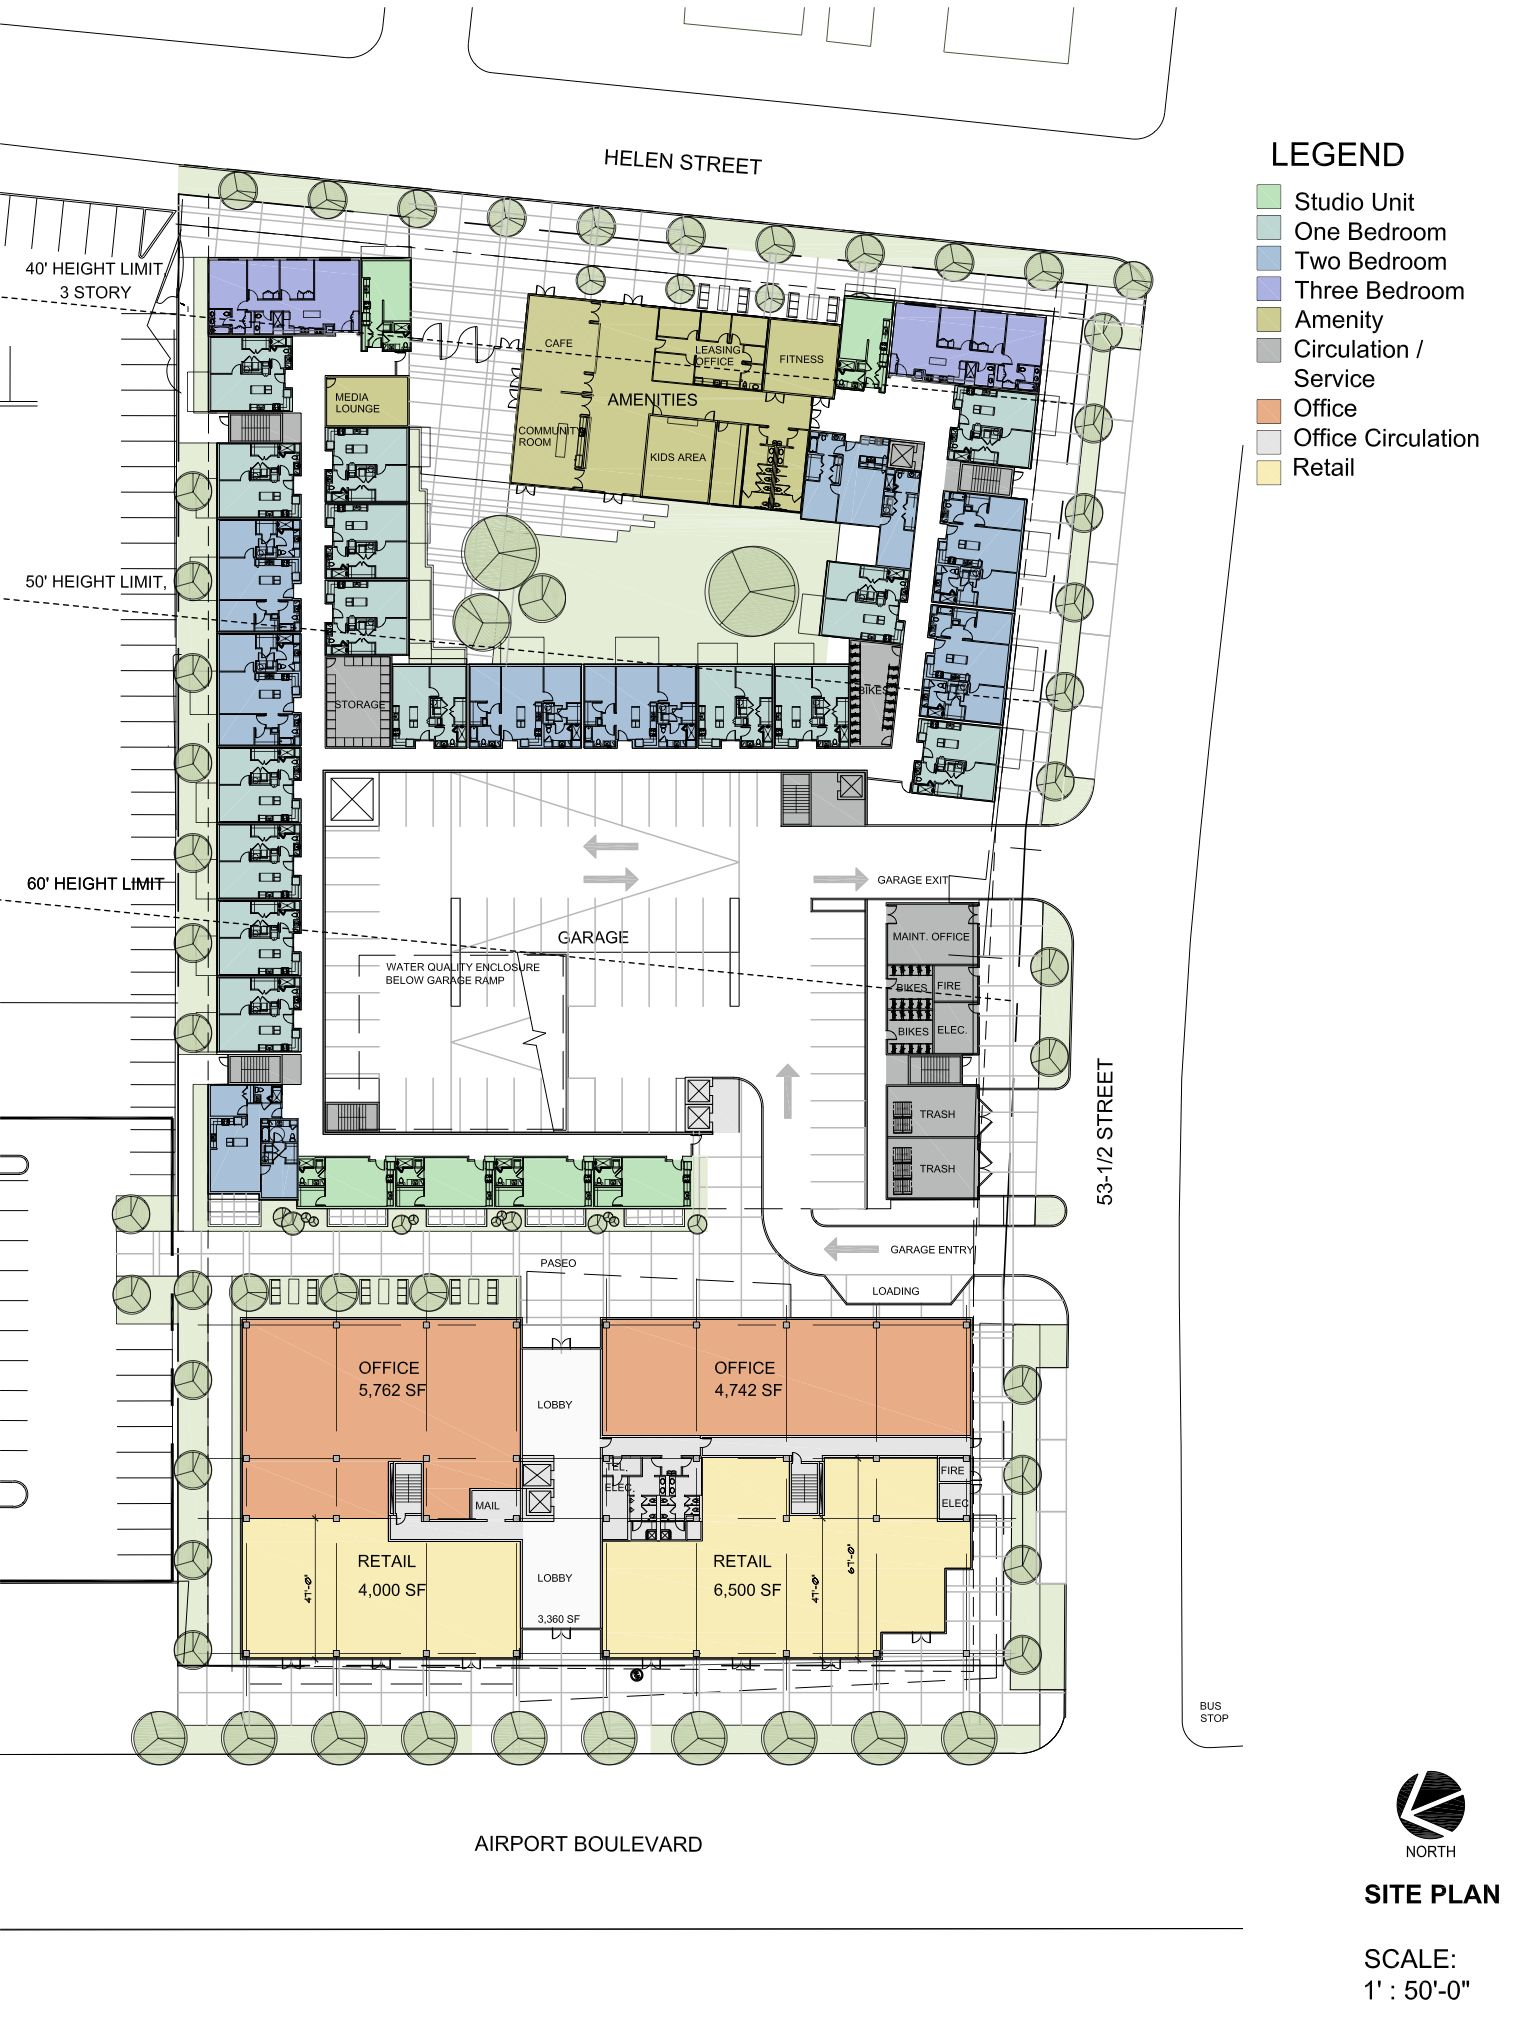 House Plan New Development Plans For Airport Project Include Affordable House Plans House Floor Plans How To Plan